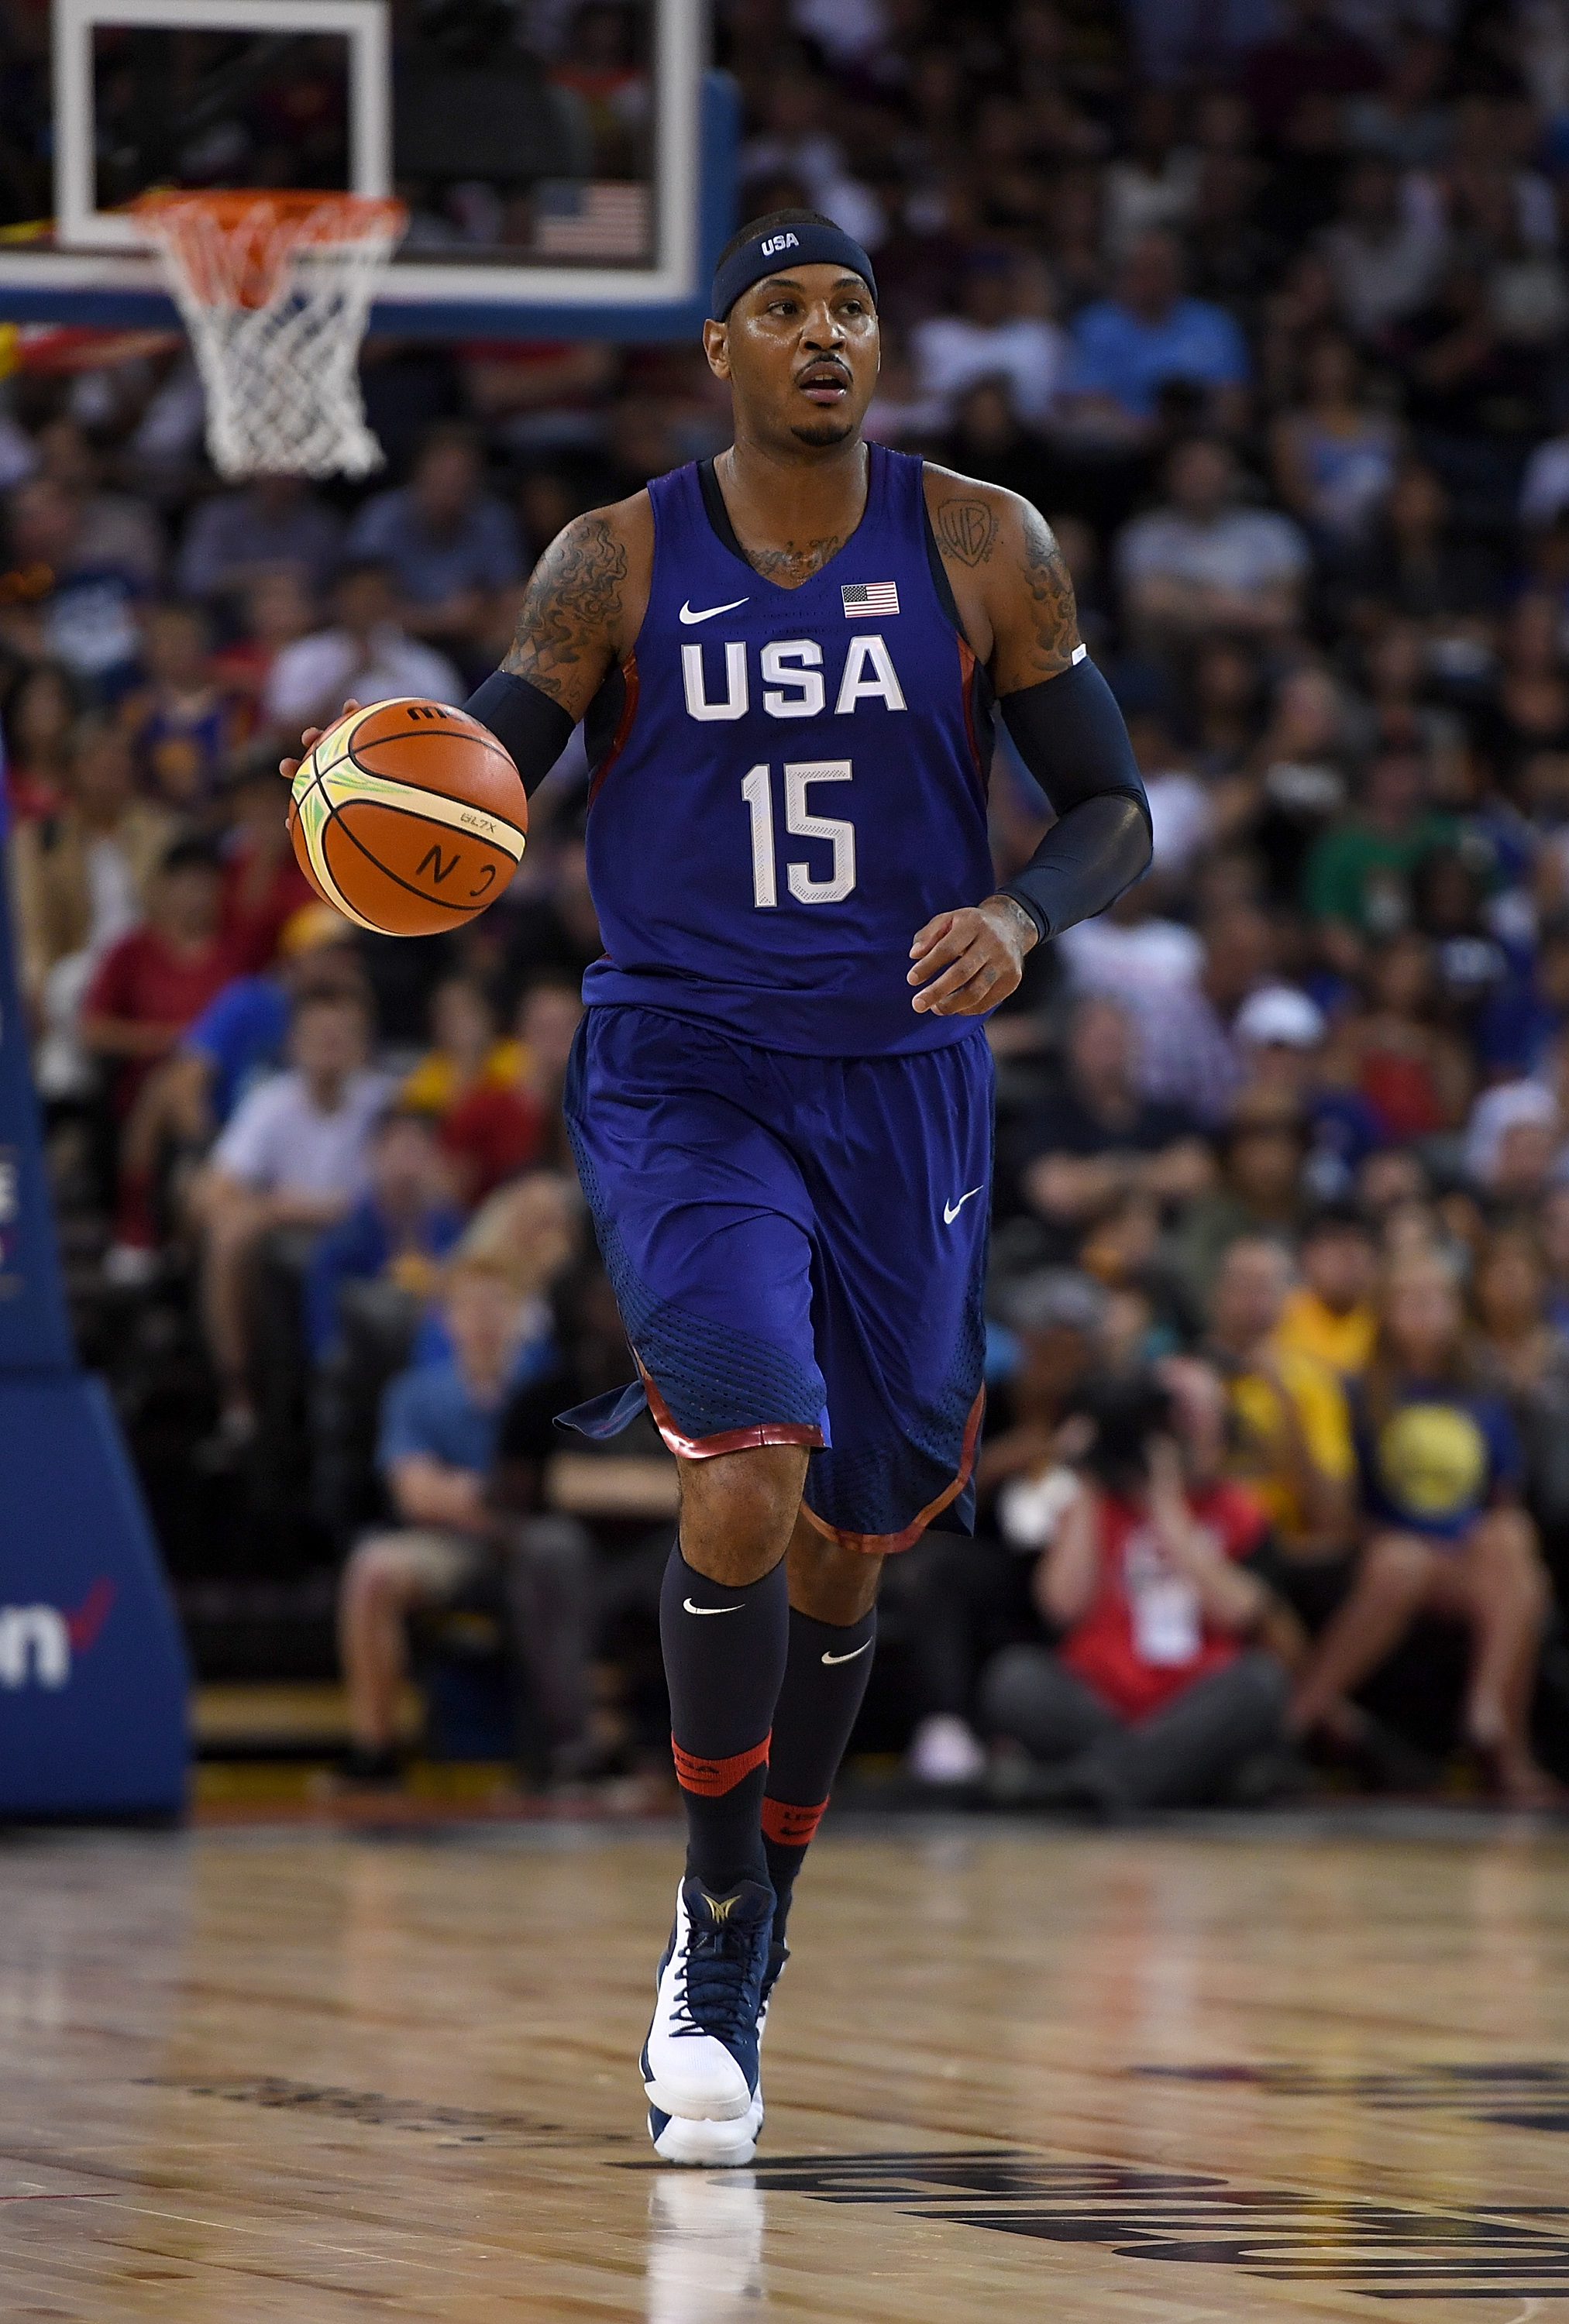 USA vs. Nigeria 2016 final score: Americans roll, 110-66, in last exhibition before Rio Olympics